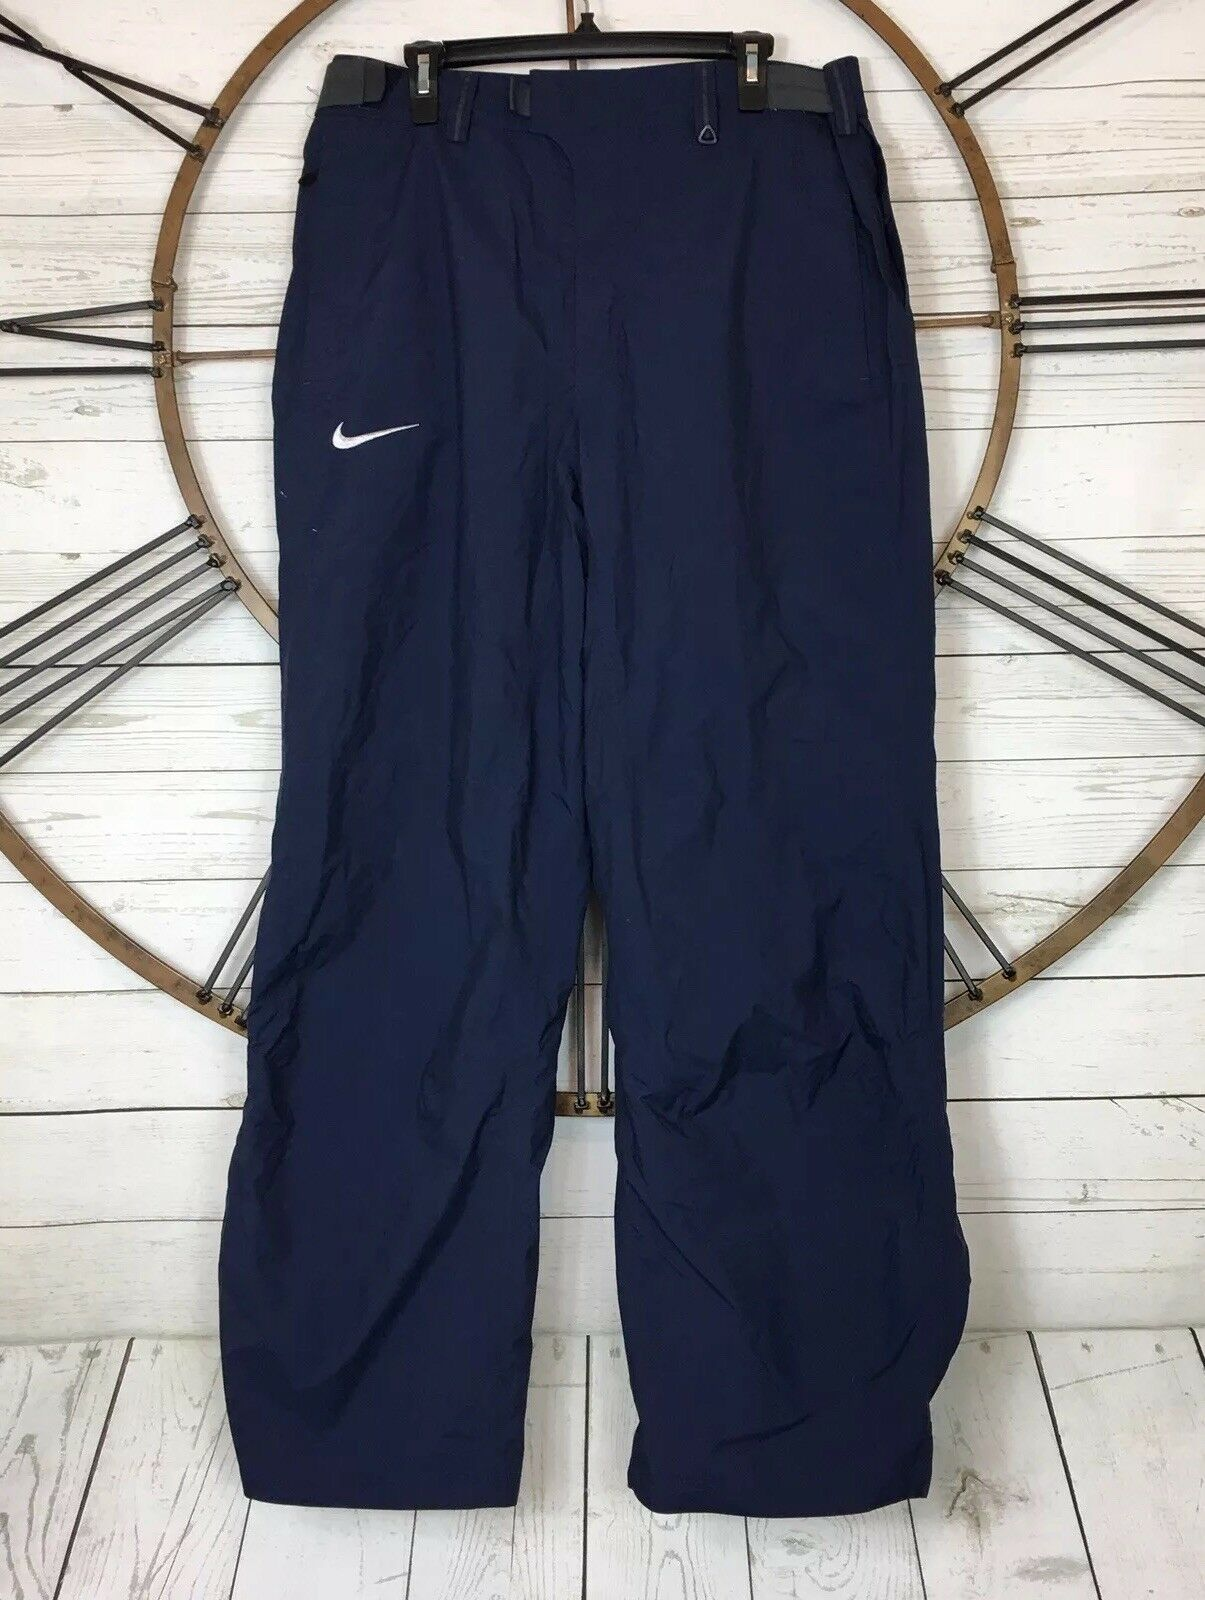 NIKE Snowboarding Snow Pants bluee Nylon Size XXL Lined